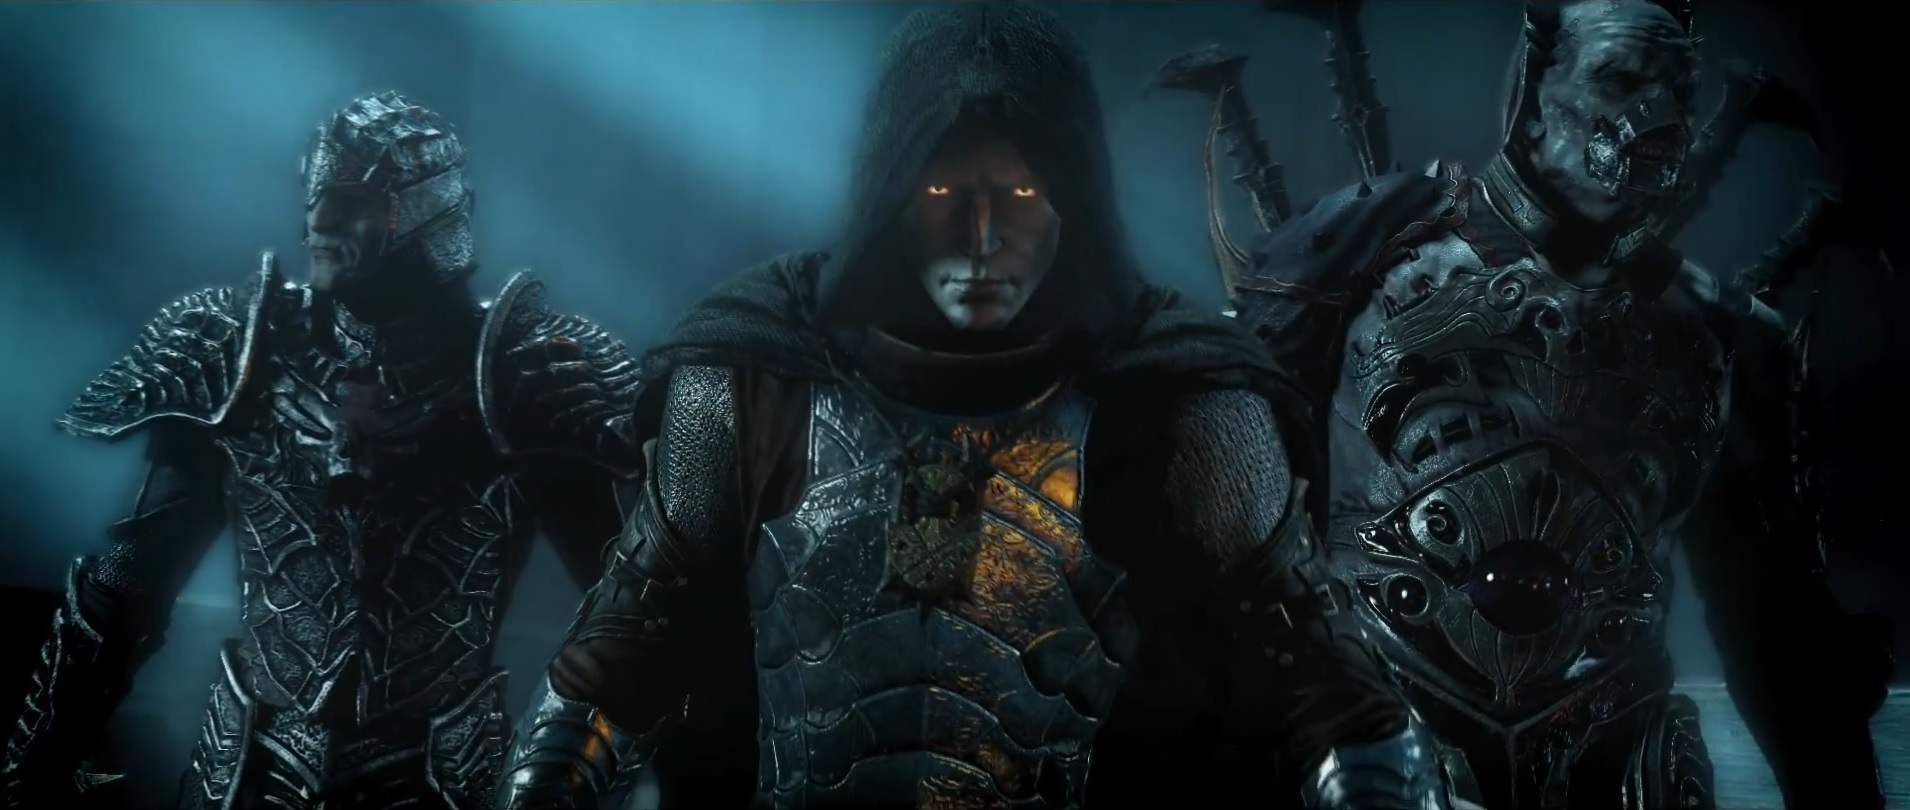 Shadow of Mordor's new free DLC lets you play as the Dark Lord's finest